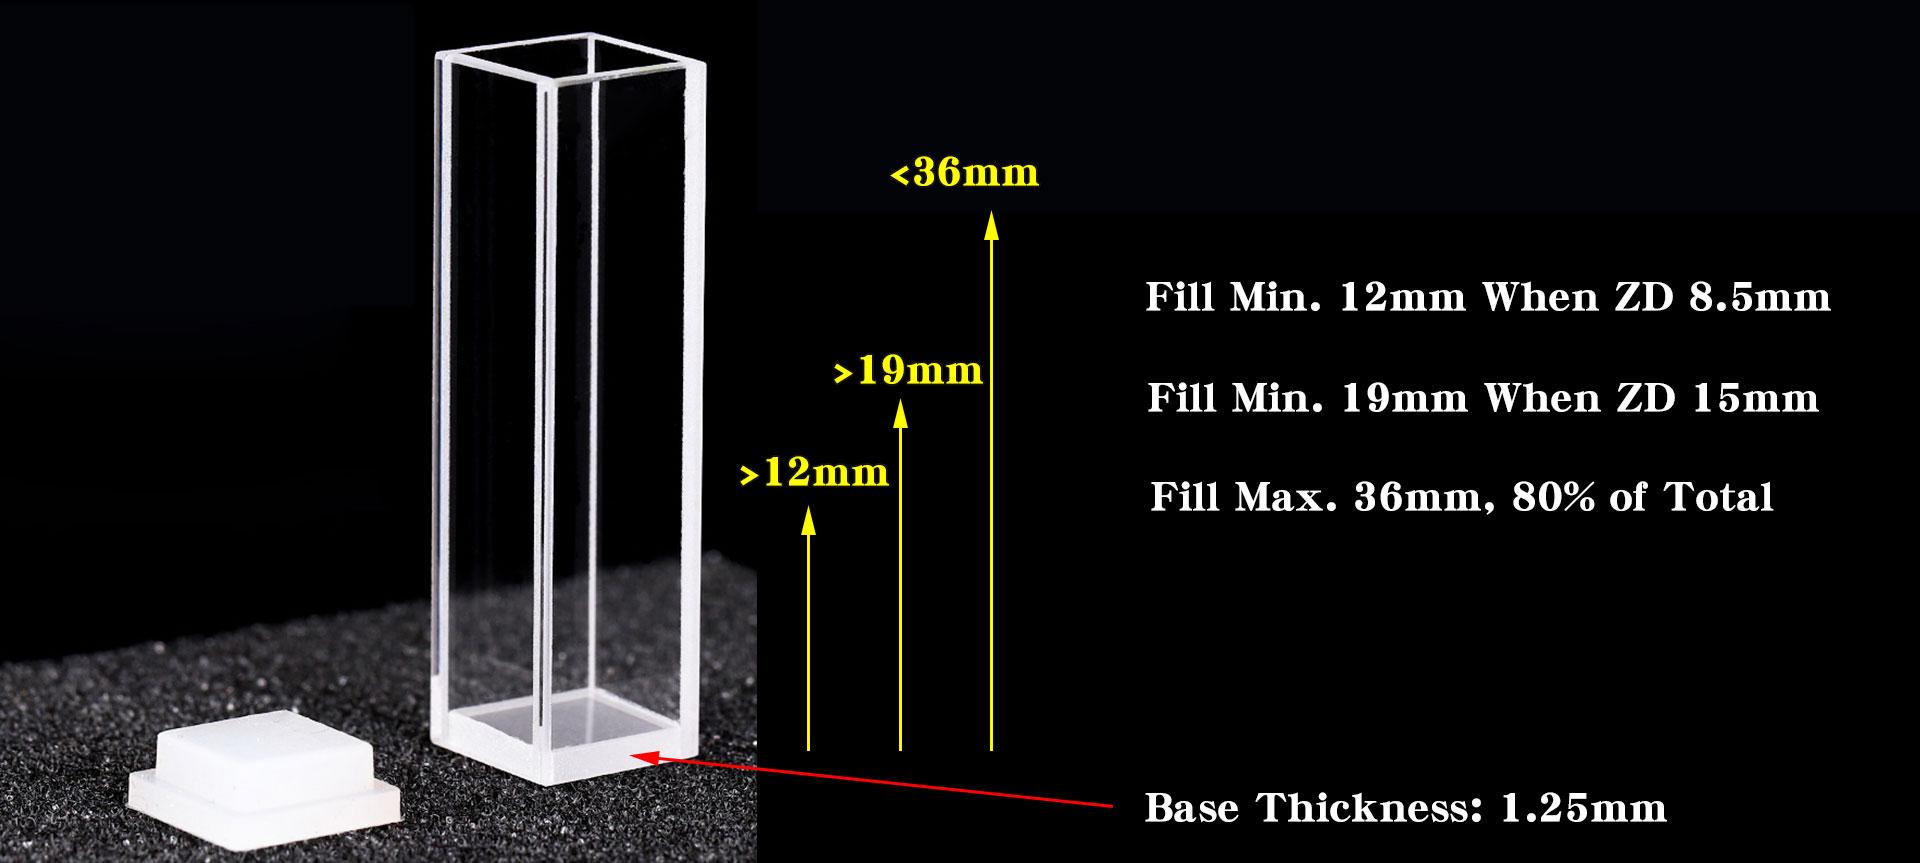 Cuvette Volume -Least Volume to Cover Z Dimension